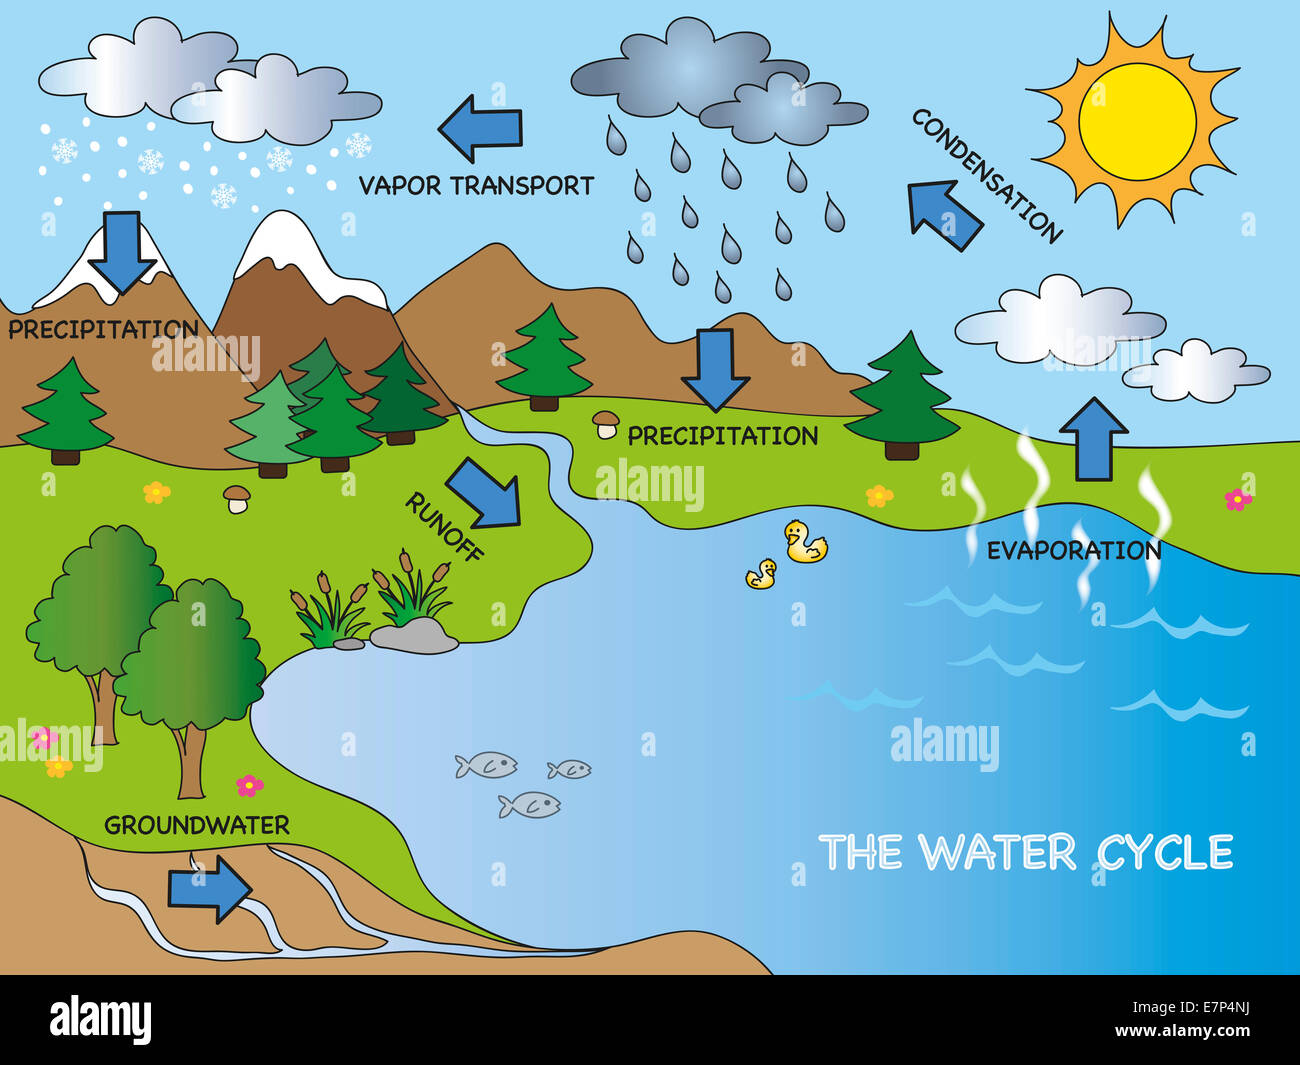 water cycle diagram stock photos \u0026 water cycle diagram stock images Peacock Cycle Diagram illustration of funny water cycle stock image